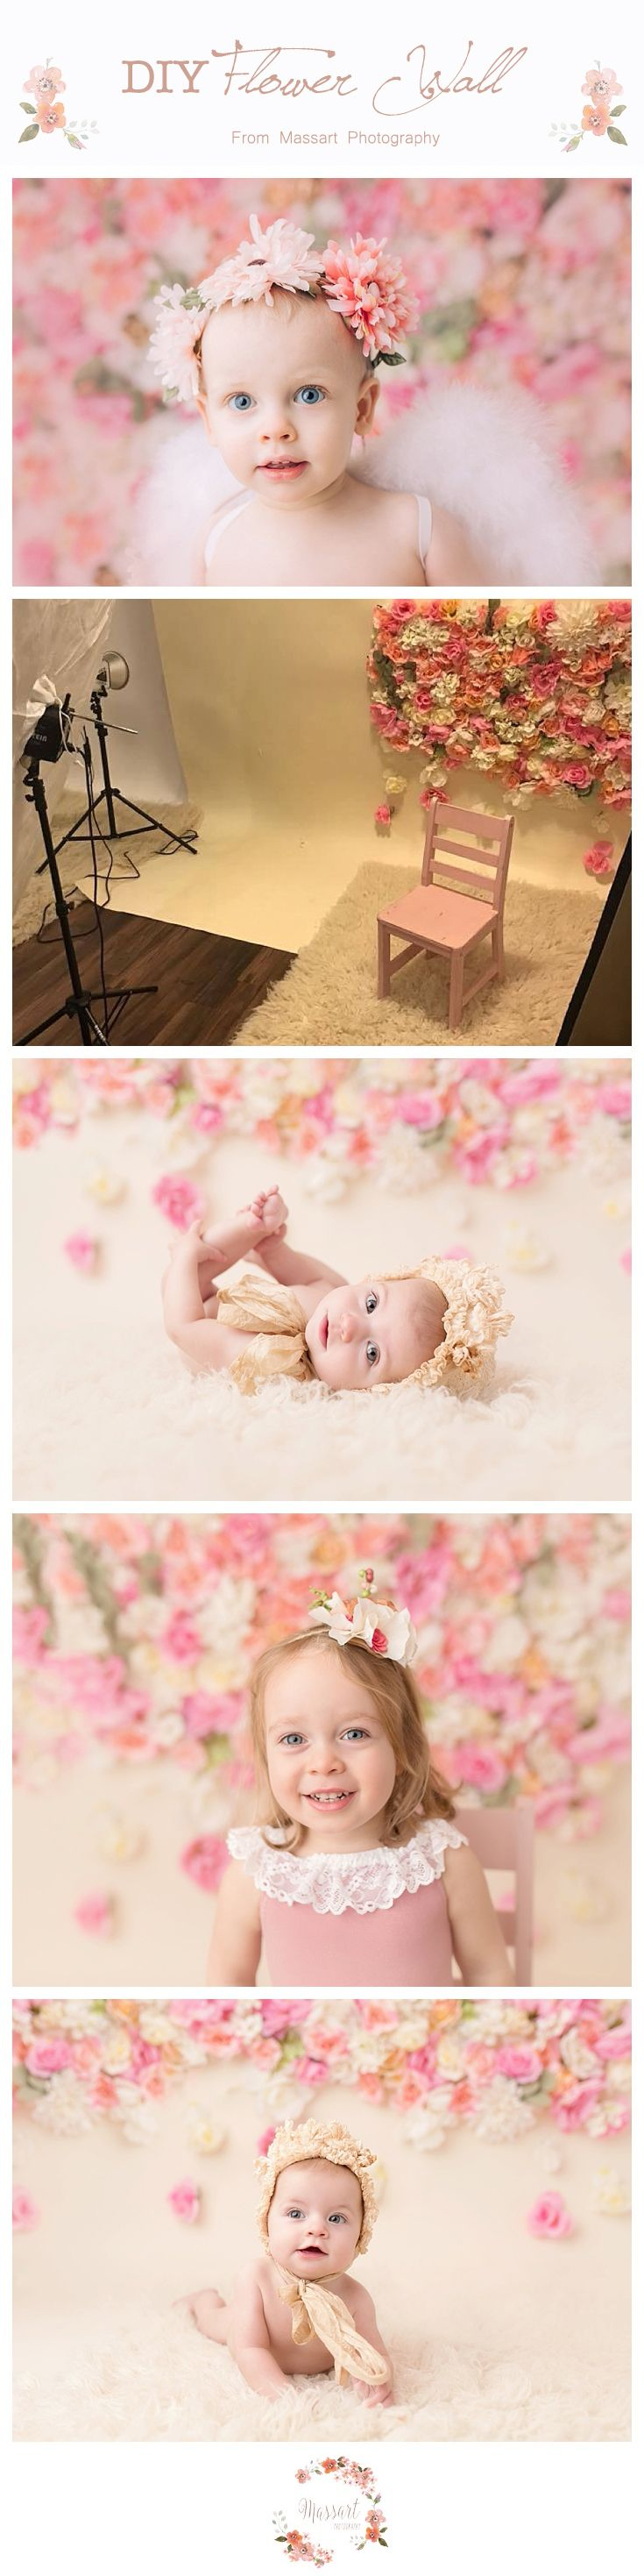 Photography flower wall backdrop DIY from Massart Photography. Step by step instructions in blog post. http://massartphotography.com/diy-flower-photography-backdrop/